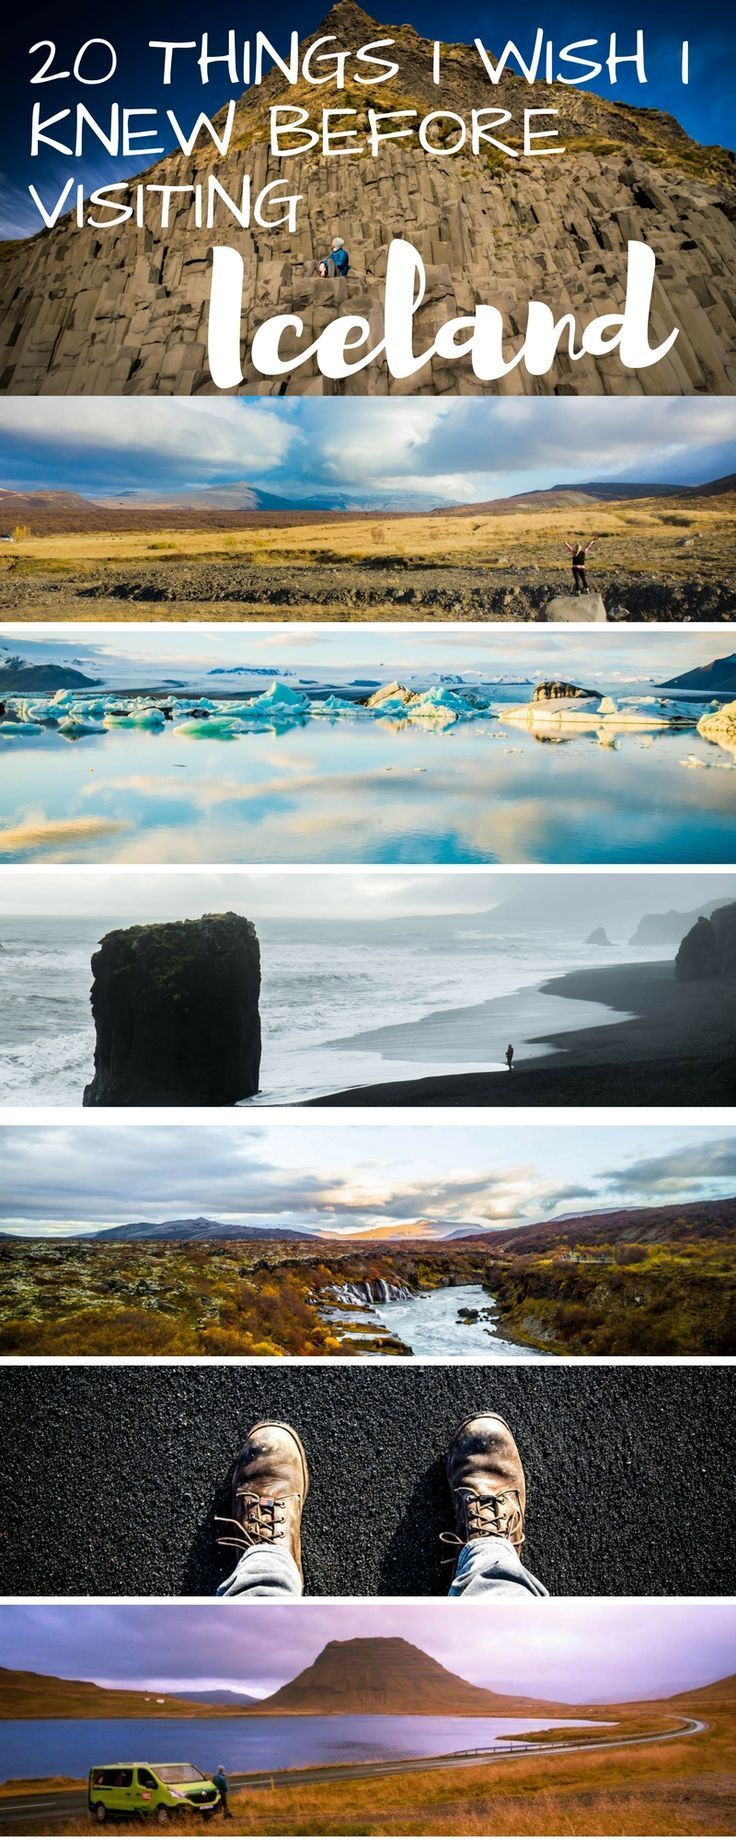 All you need to know for when you travel to Iceland. Including tips about the Blue Lagoon, Reykjavik, Things to do, the best time to fo (winter or summer), food, beautiful landscape photos, road trip ideas, Golden Circle information, waterfall suggestions